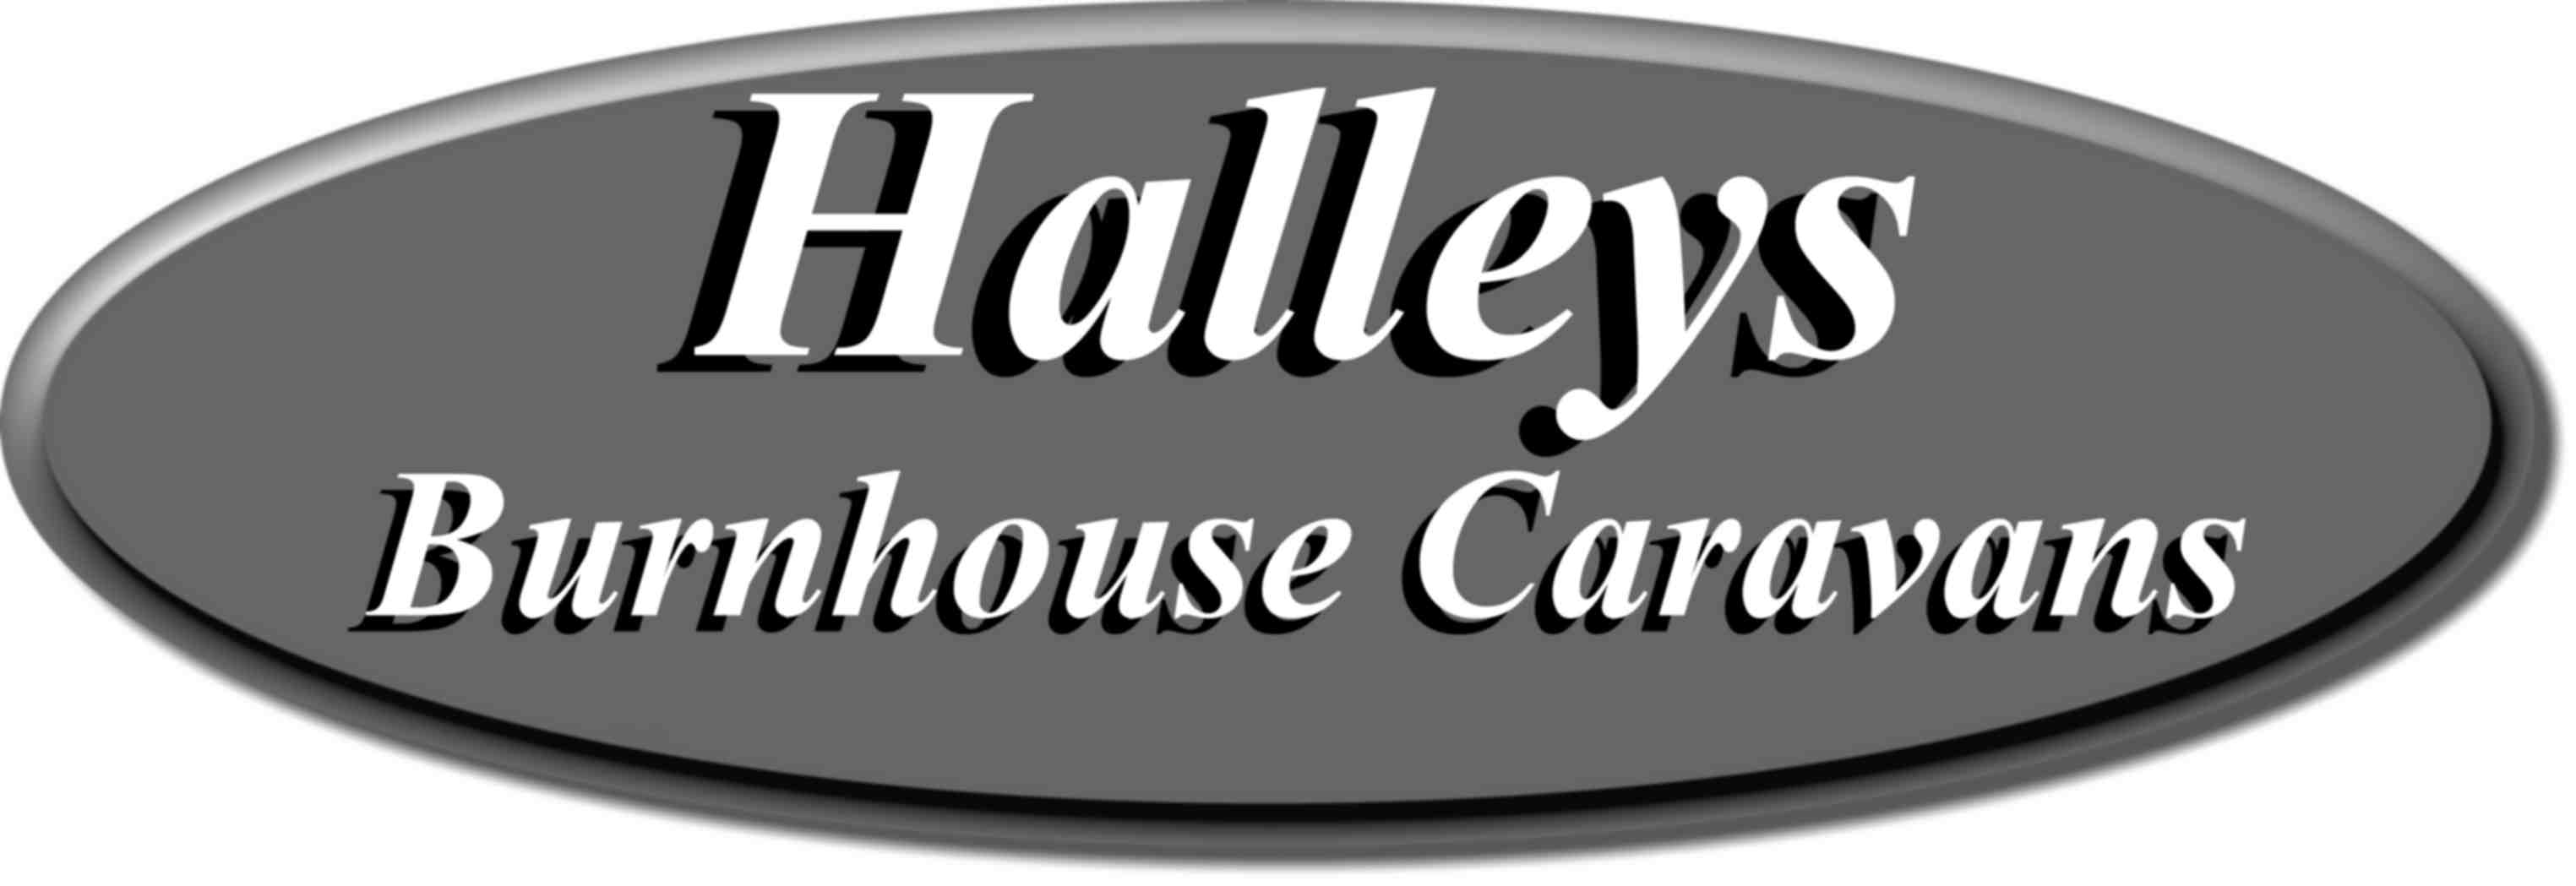 Halleys Burnhouse Logo